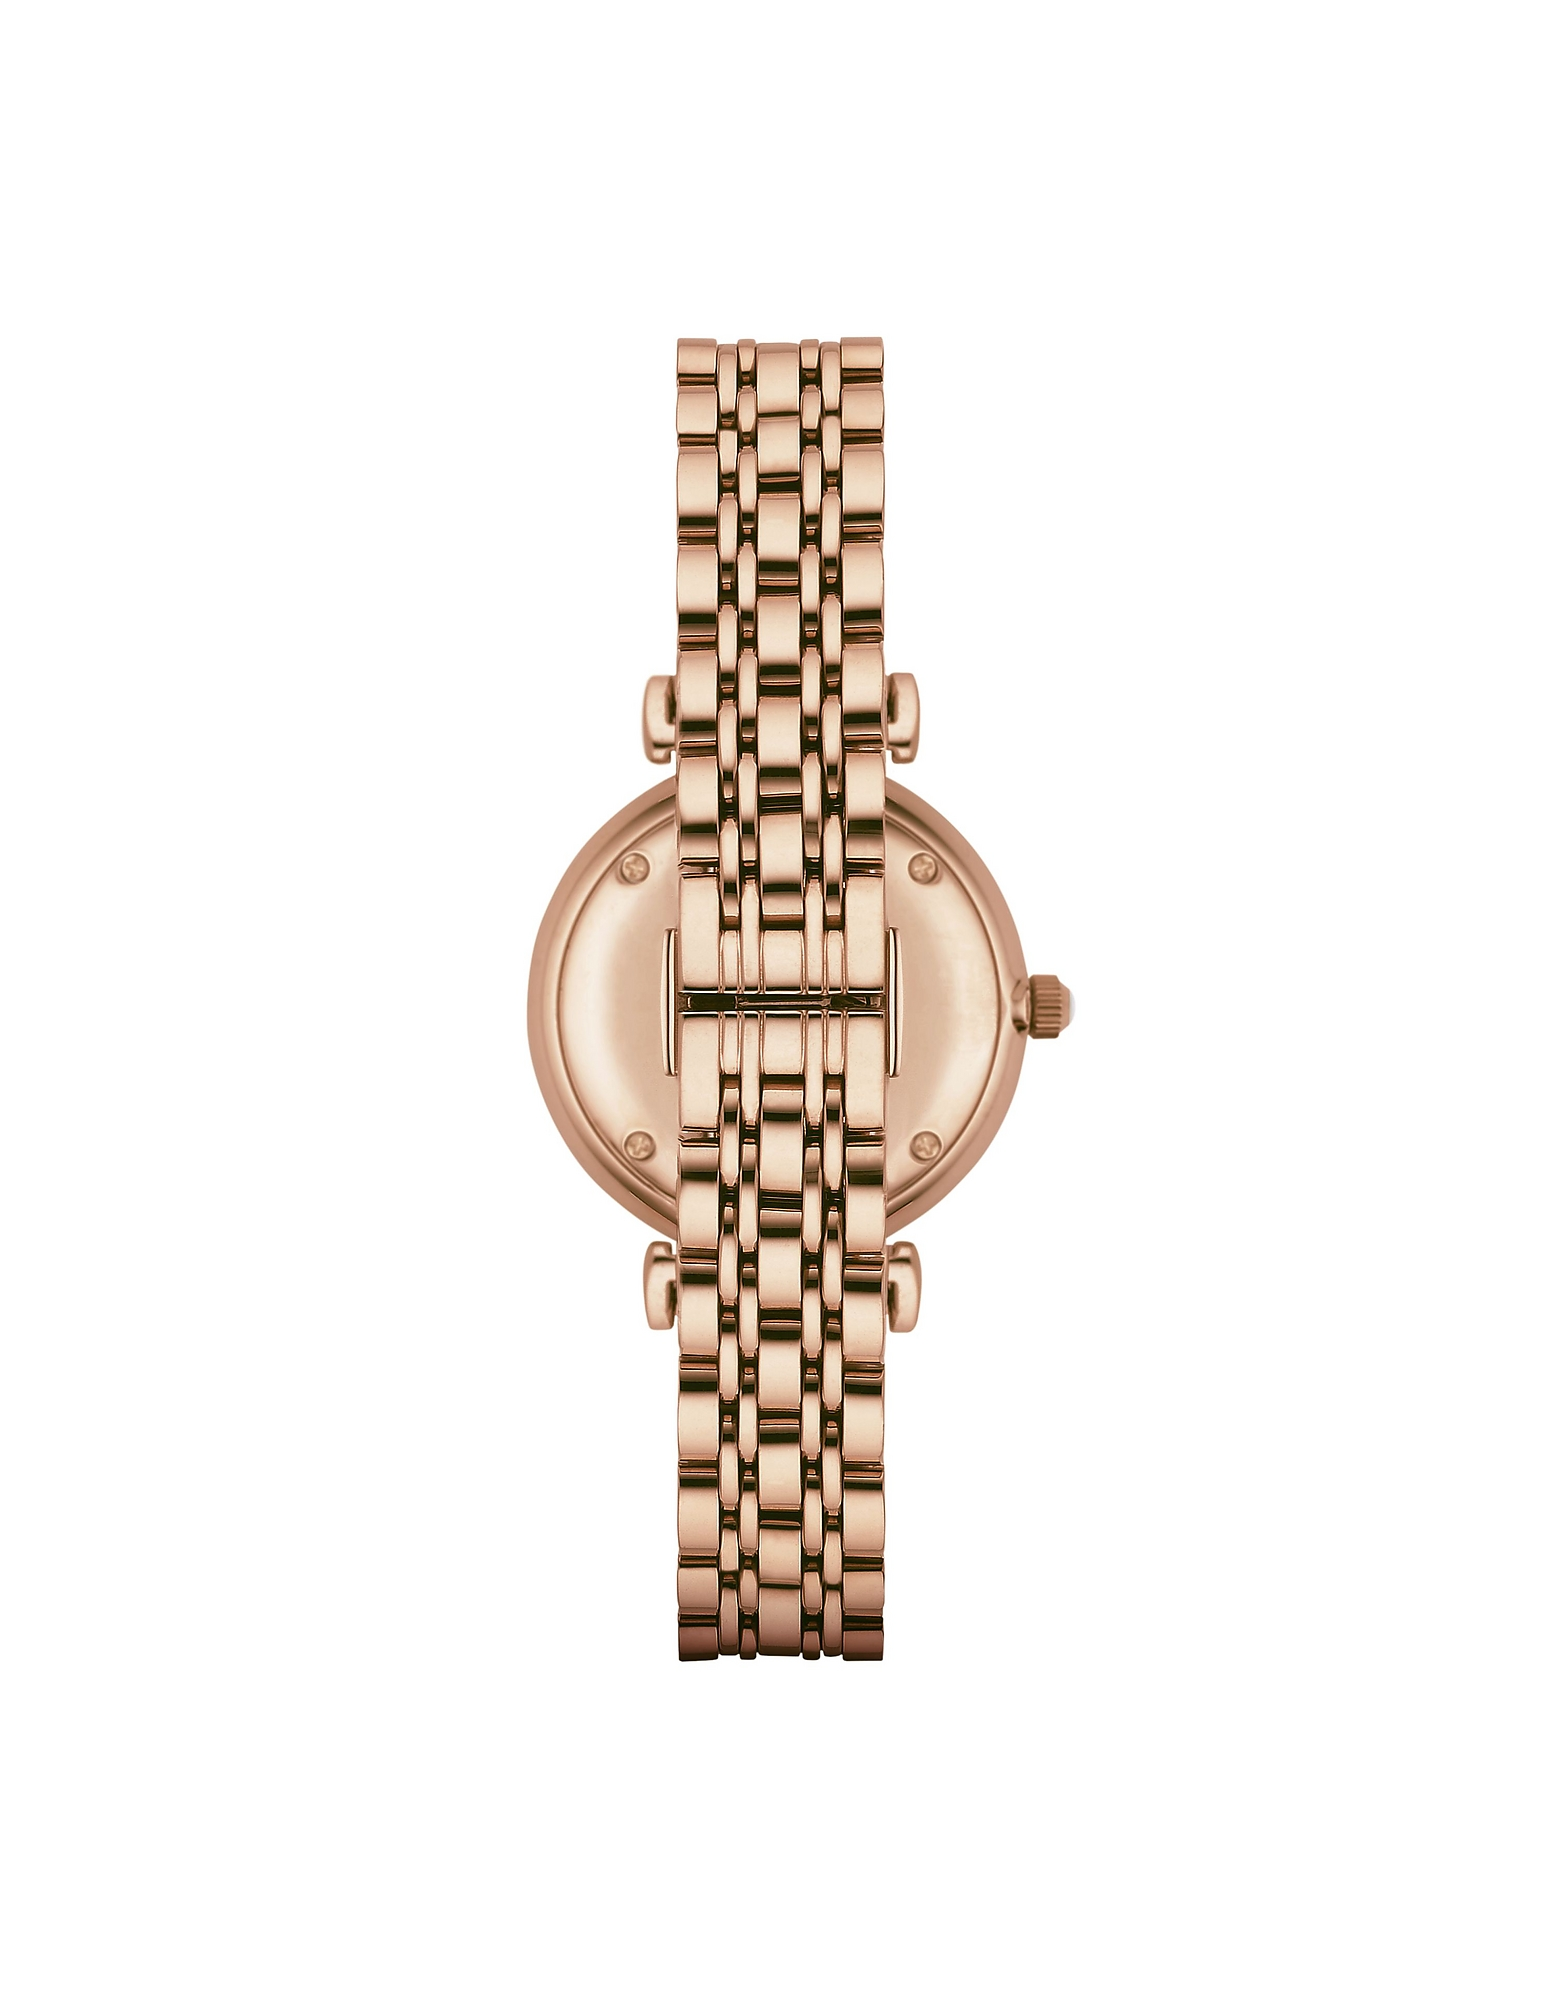 Rose Gold PVD Stainless Steel Women's Quartz Watch w/Mother of Pearl Signature Dial от Forzieri.com INT